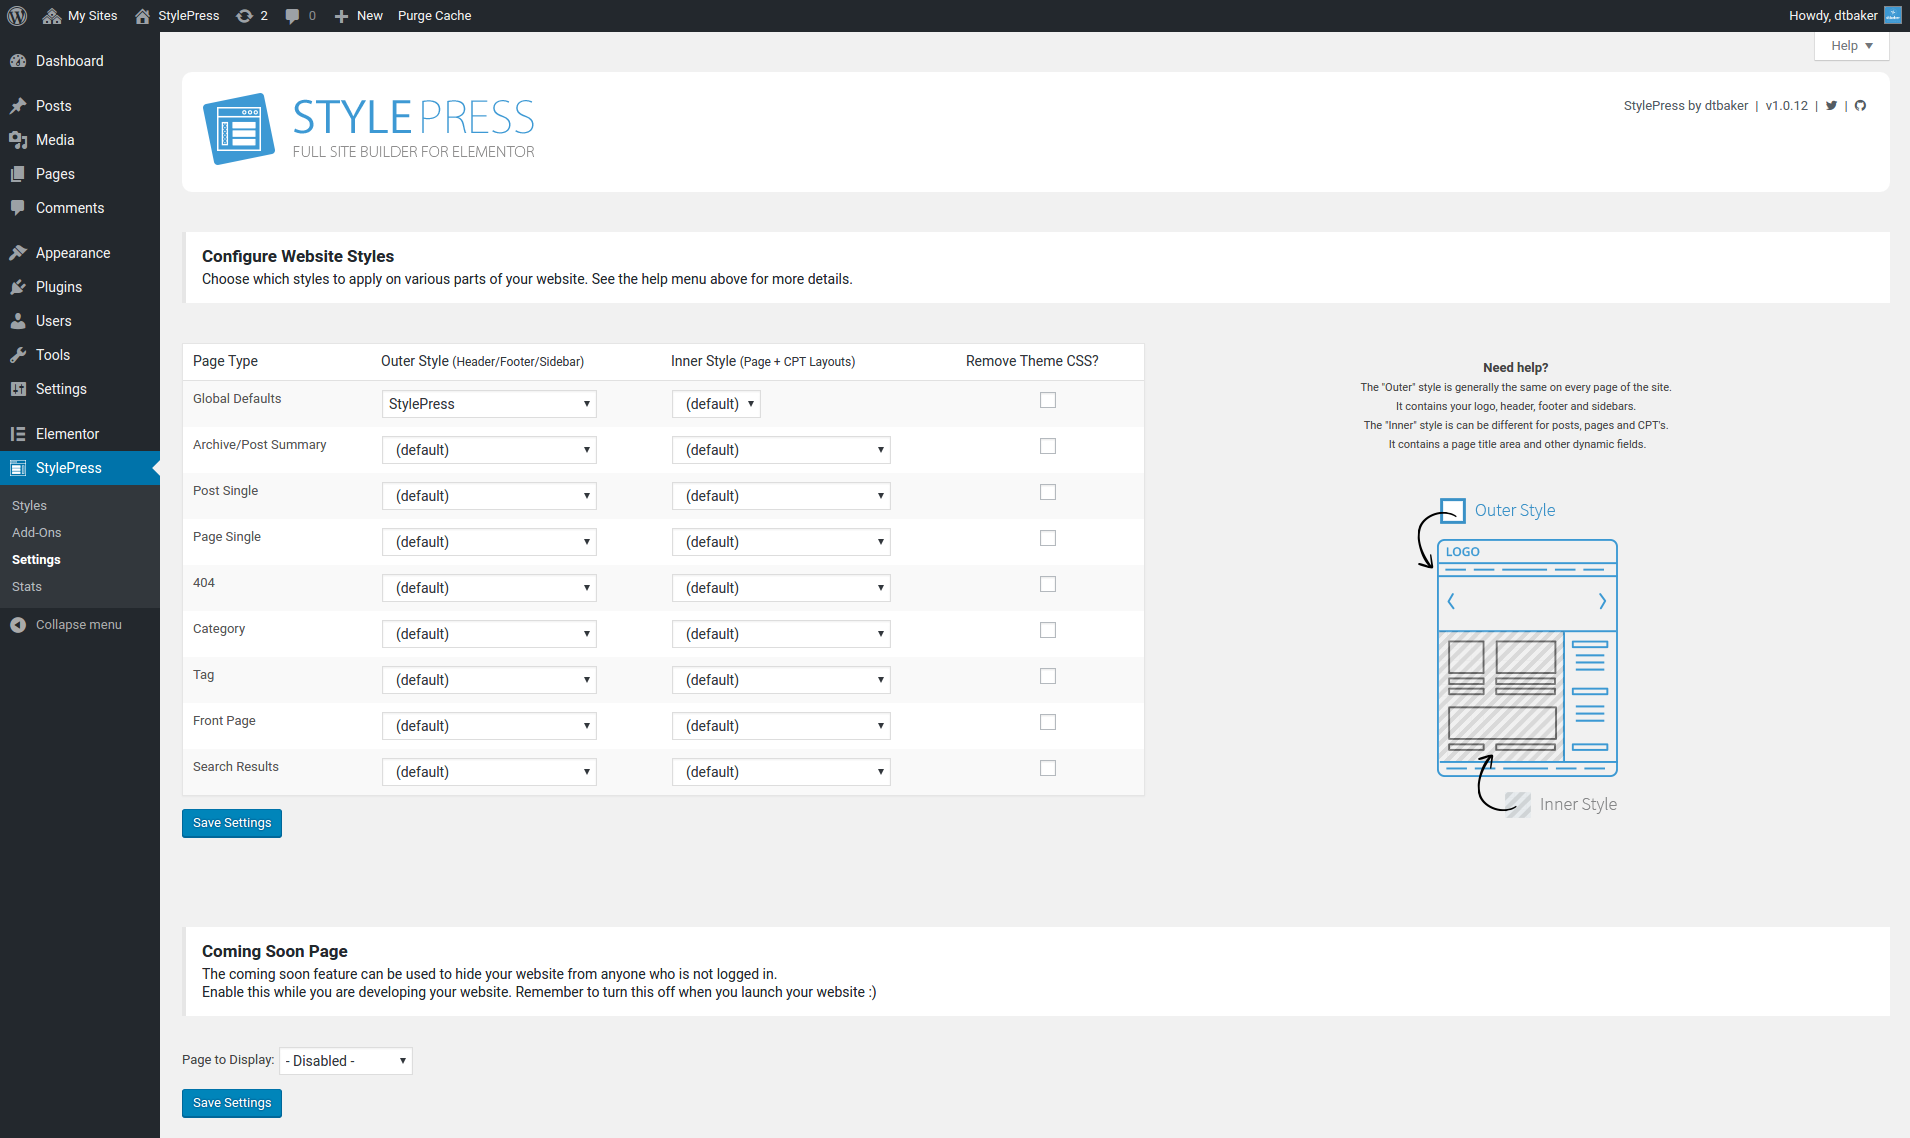 Overview of the settings page. You can set various default styles for various page types.